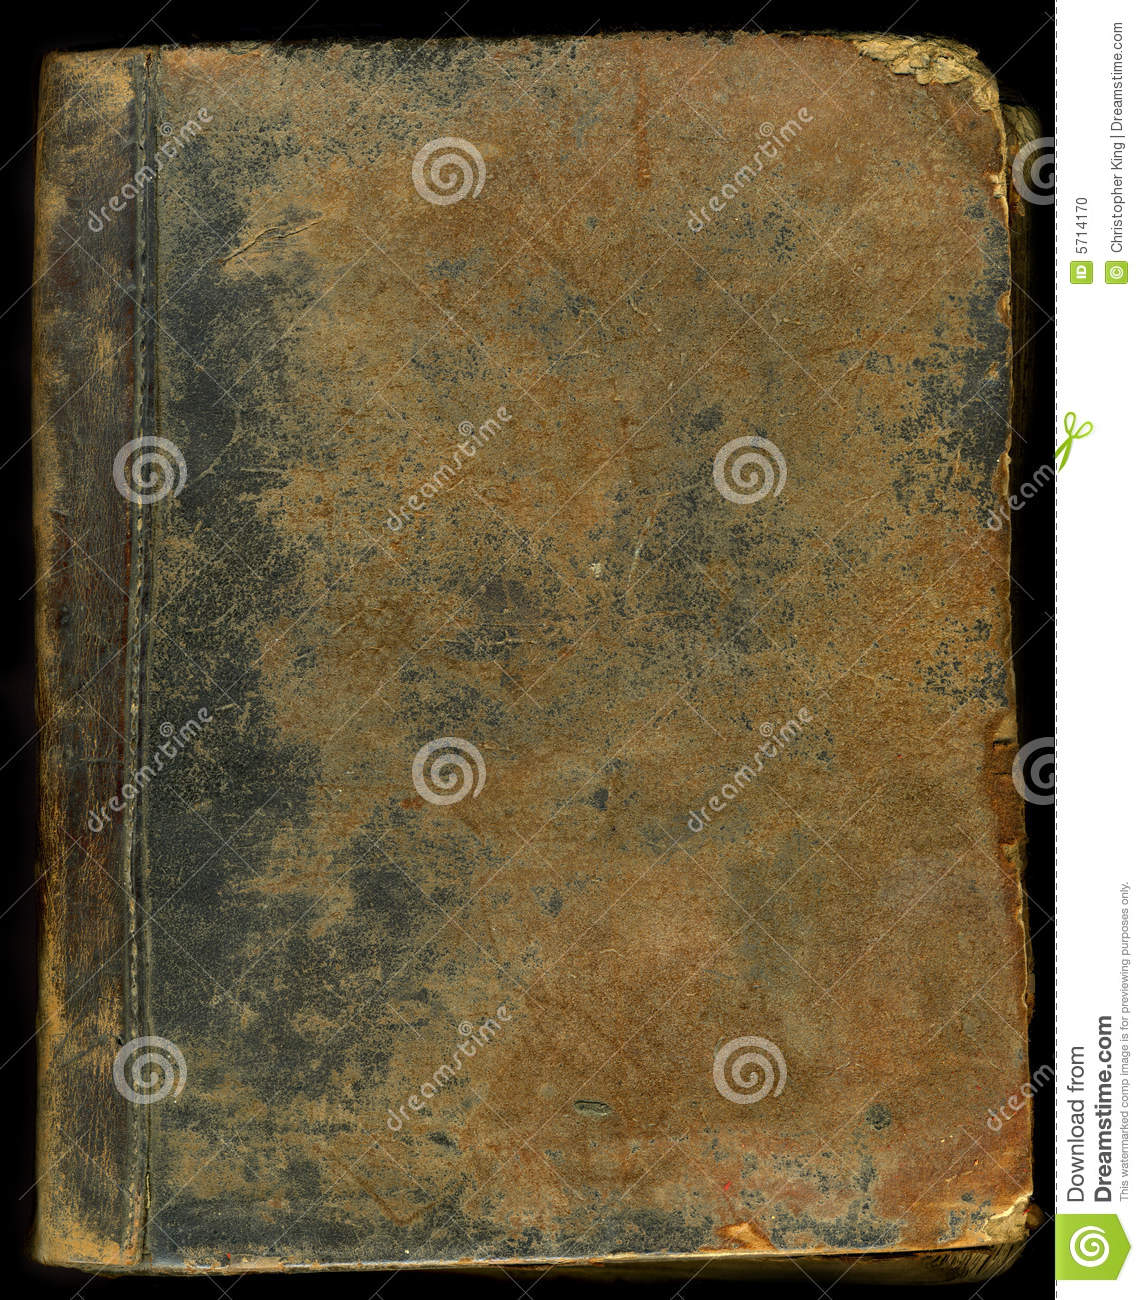 Old Leather Book Cover Images : Old leather book cover stock photo image